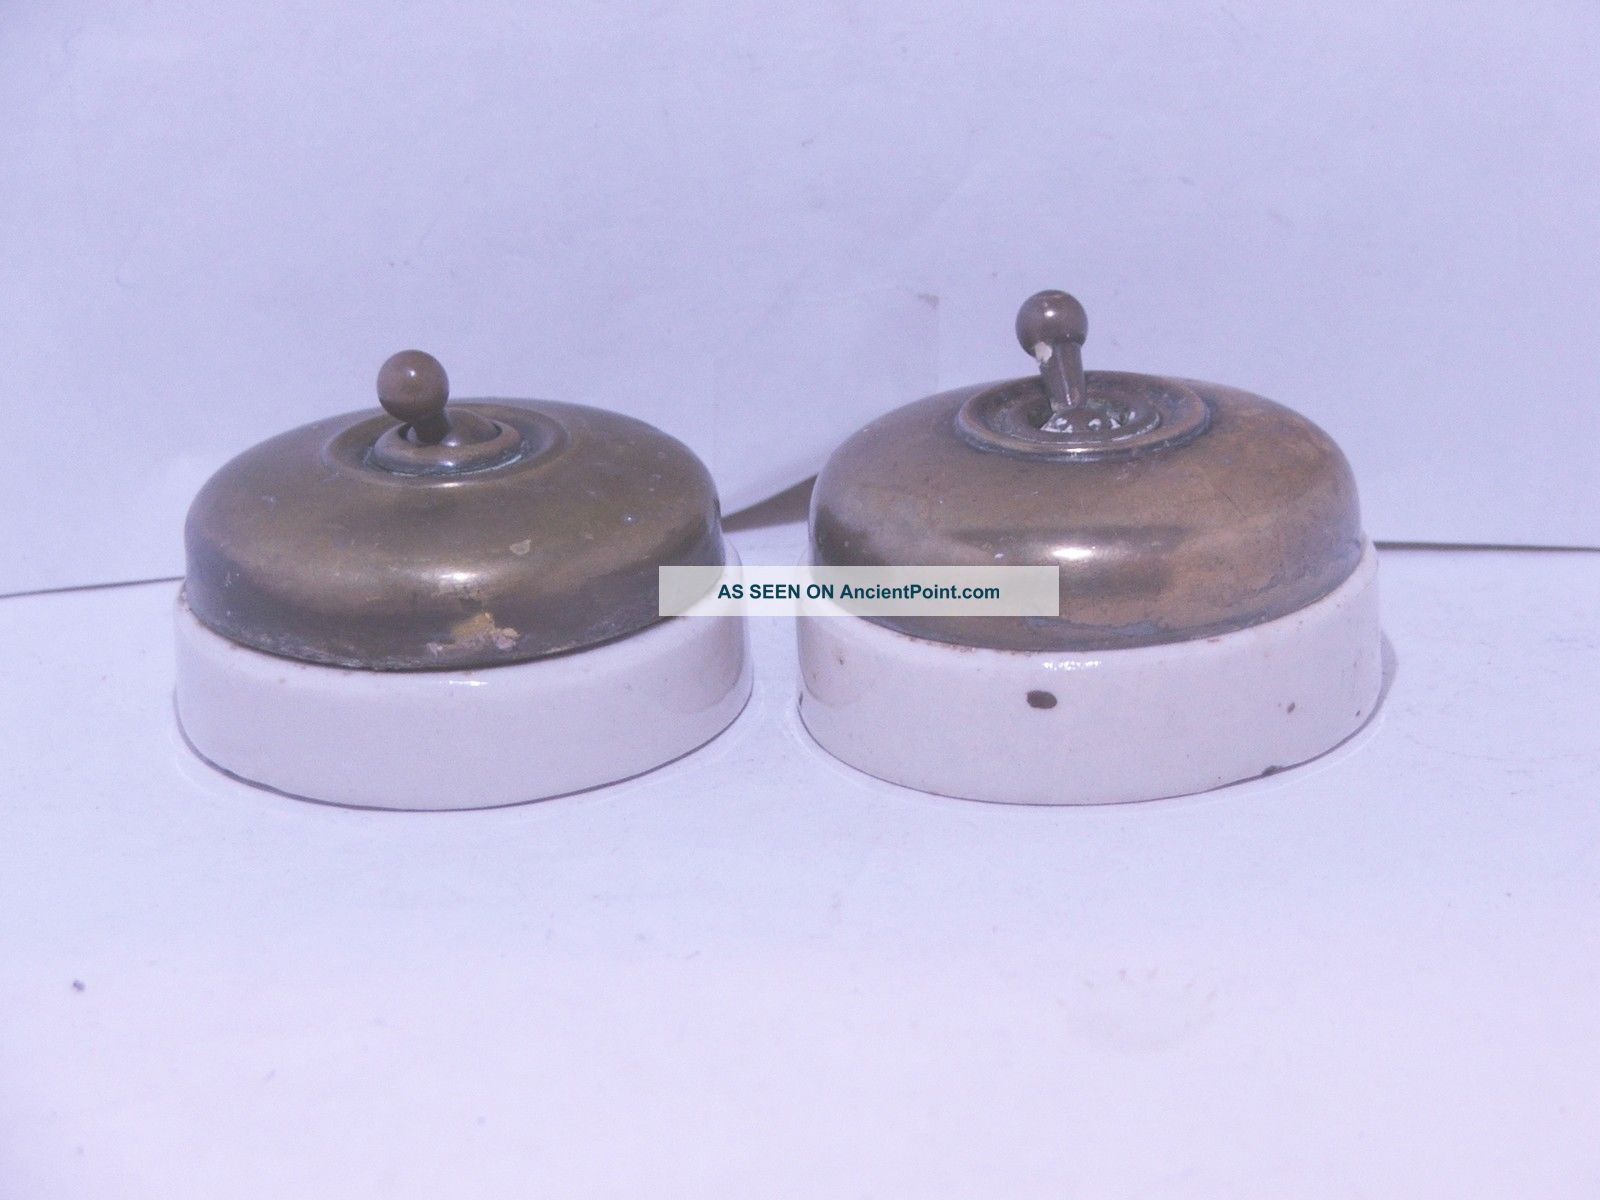 2 Vintage Brass And Ceramic Toggle Light Switch Crabtree C2000 Vitreous Light Switches photo